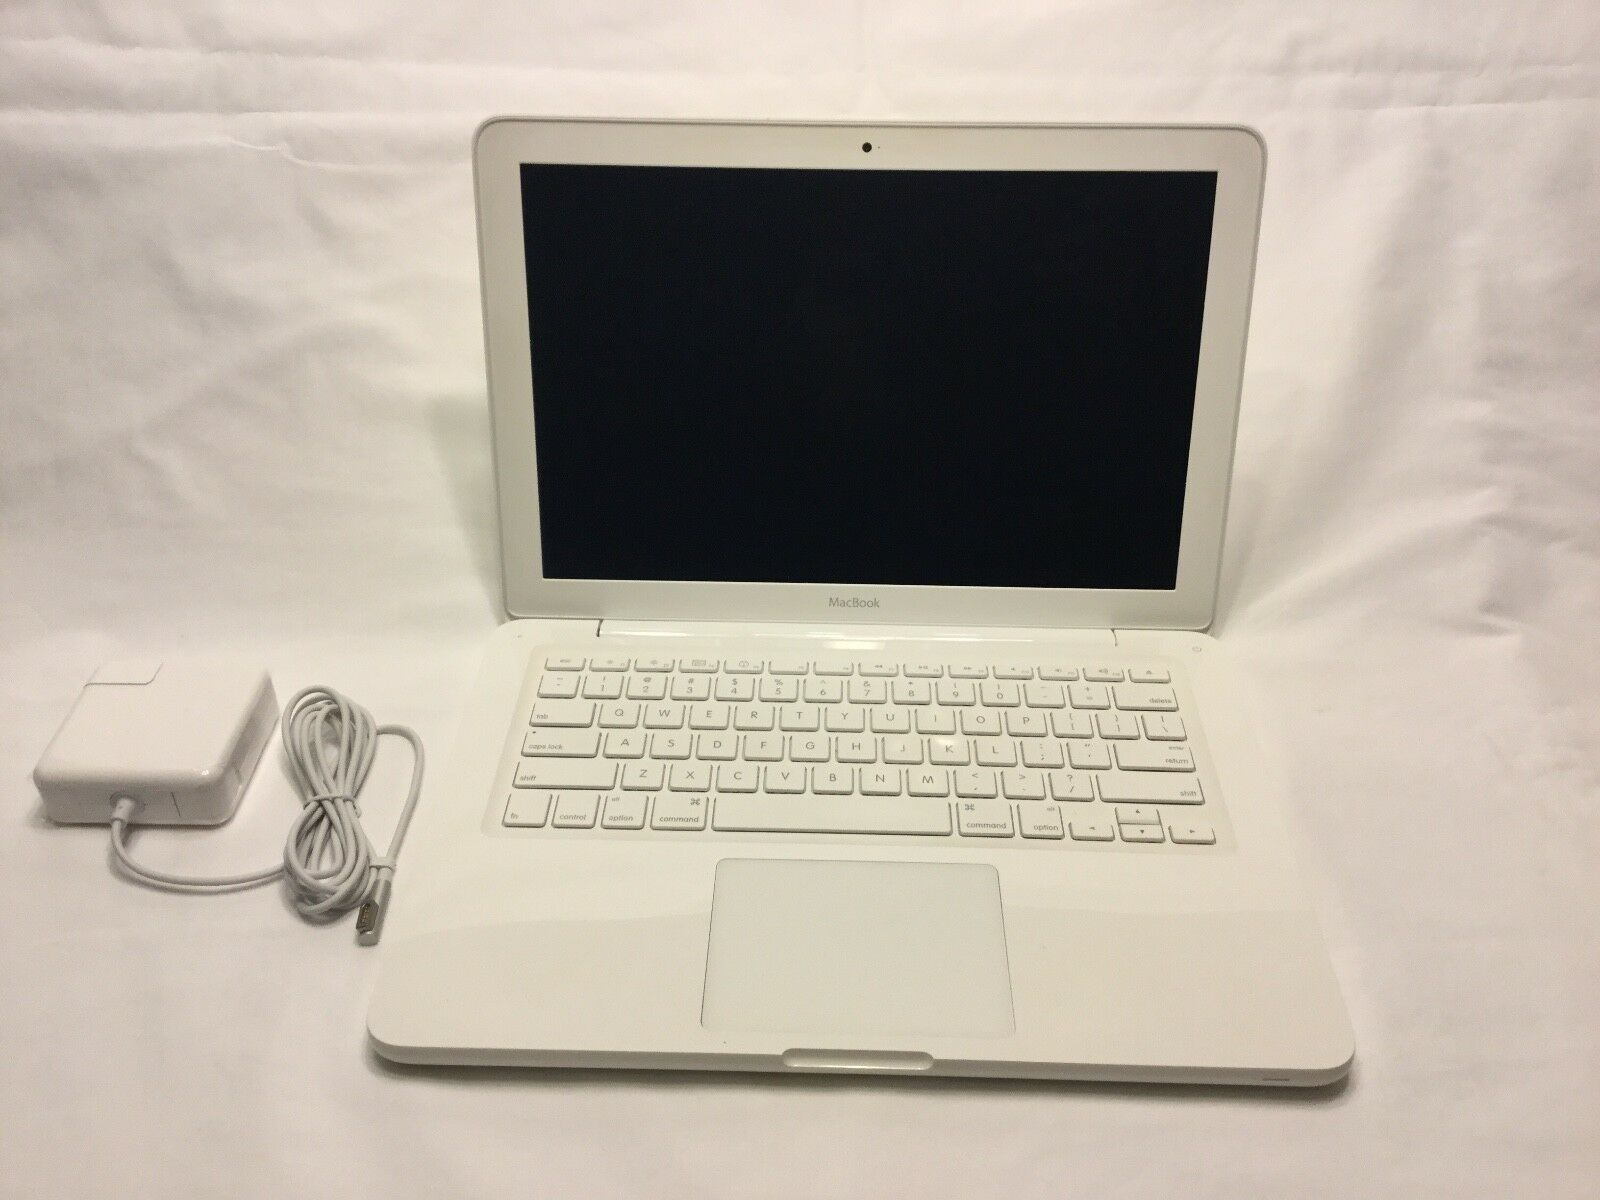 "Apple MacBook Mid 2010 A1342 13.3"" Intel Core 2 Duo  2.4GHz 3GB 250GB"